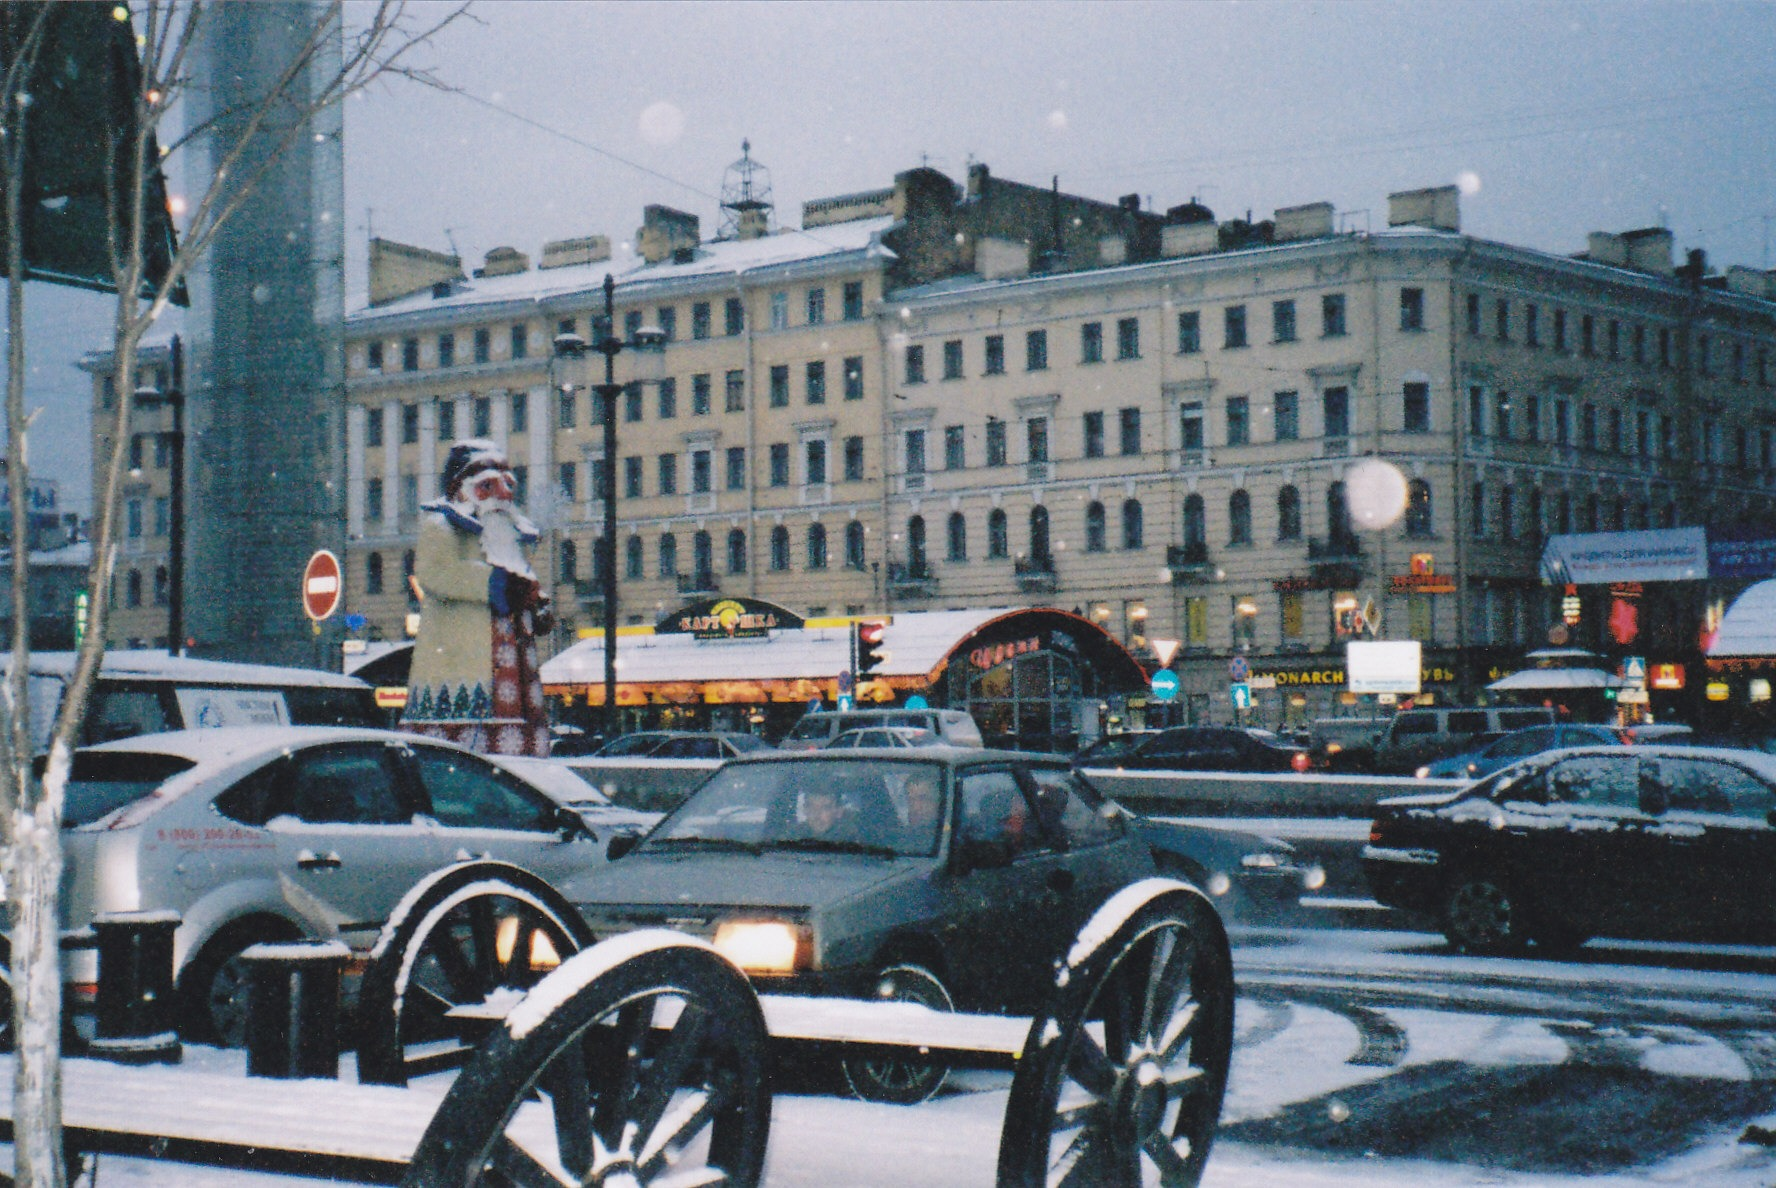 Sennaya Ploshchad (Haymarket Square), made famous by Crime and Punishment